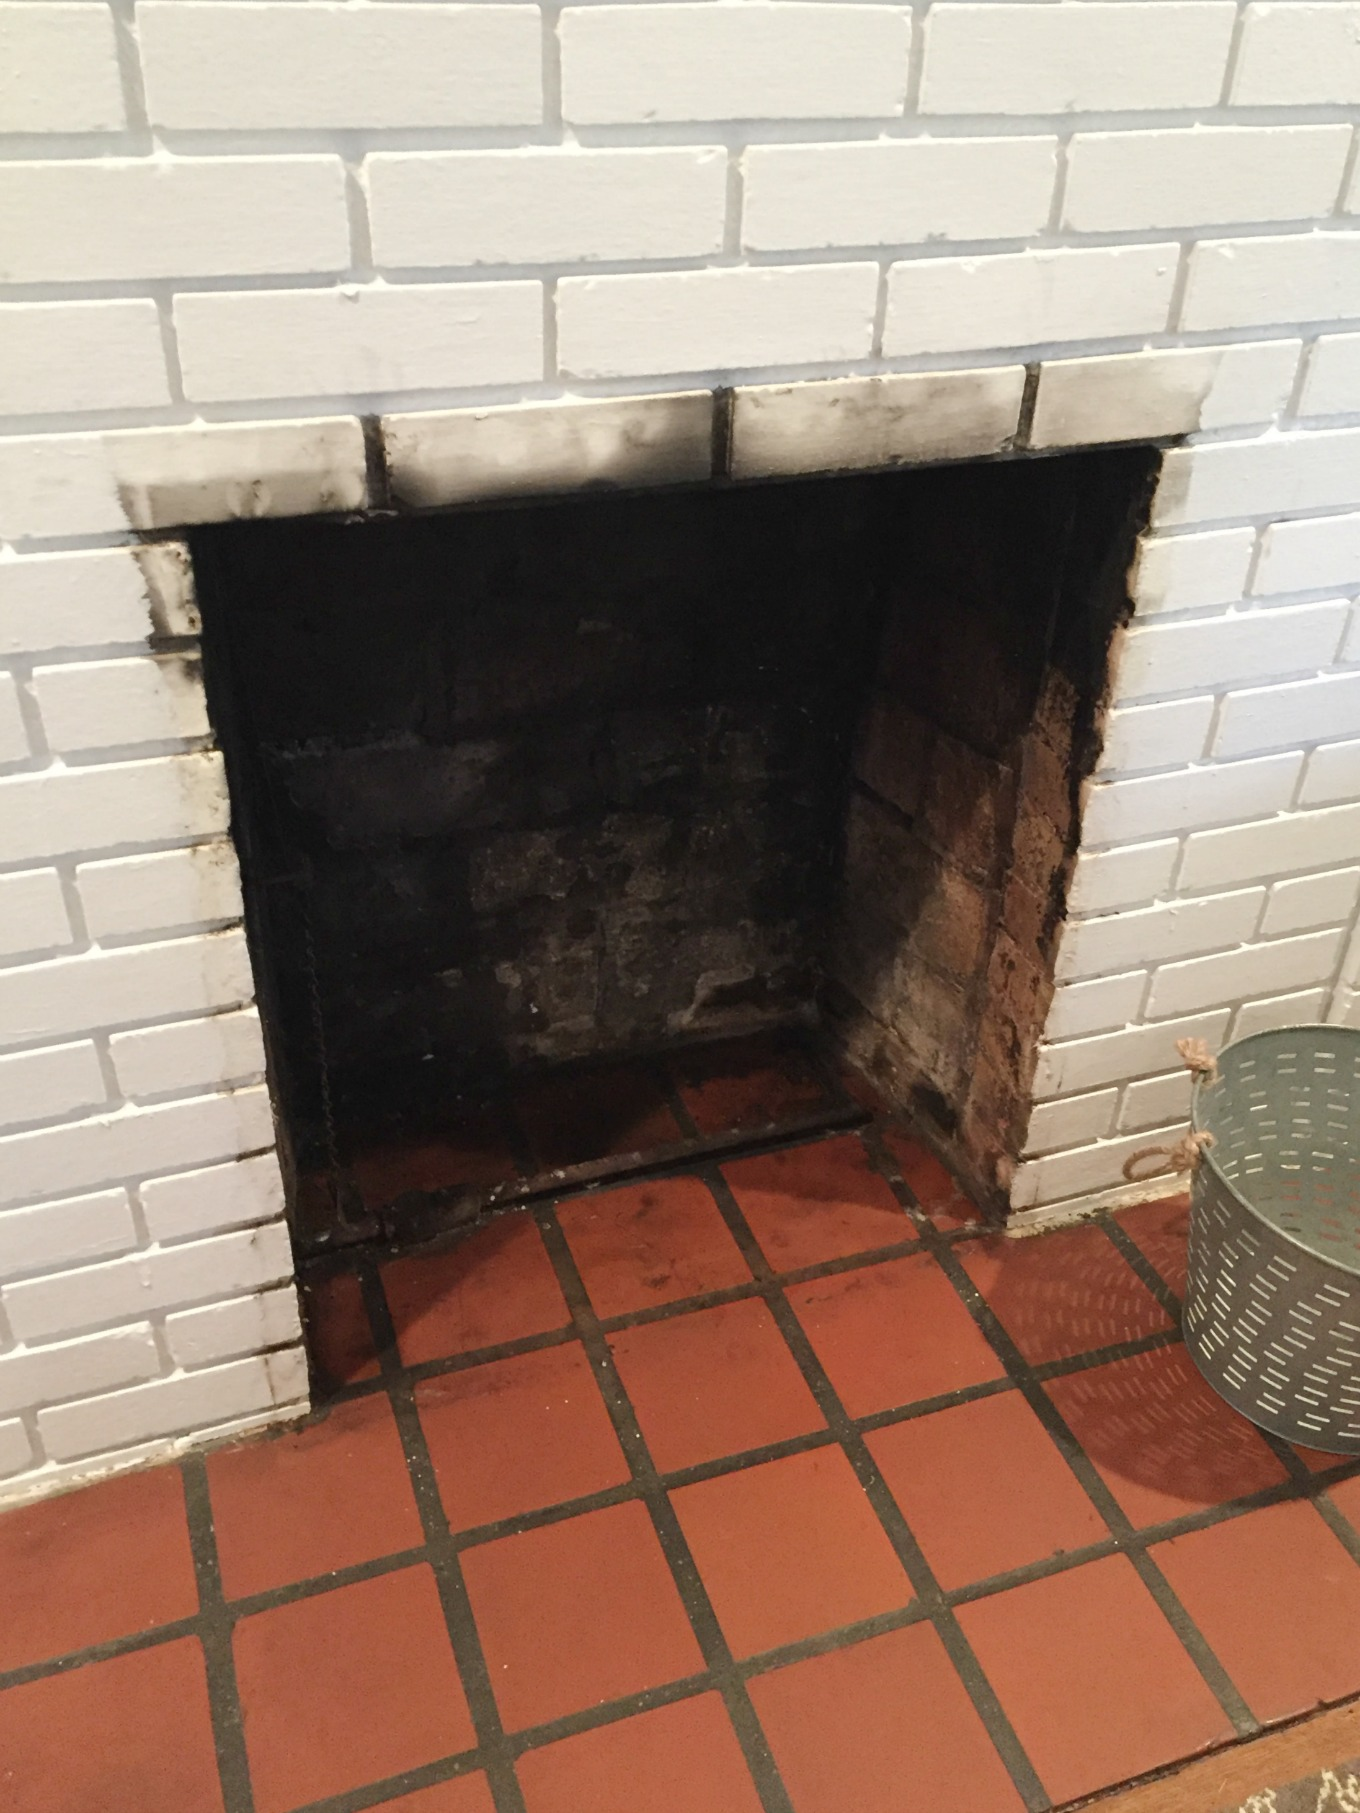 How to clean a fireplace firebox cleaning soot off brick - thediybungalow.com